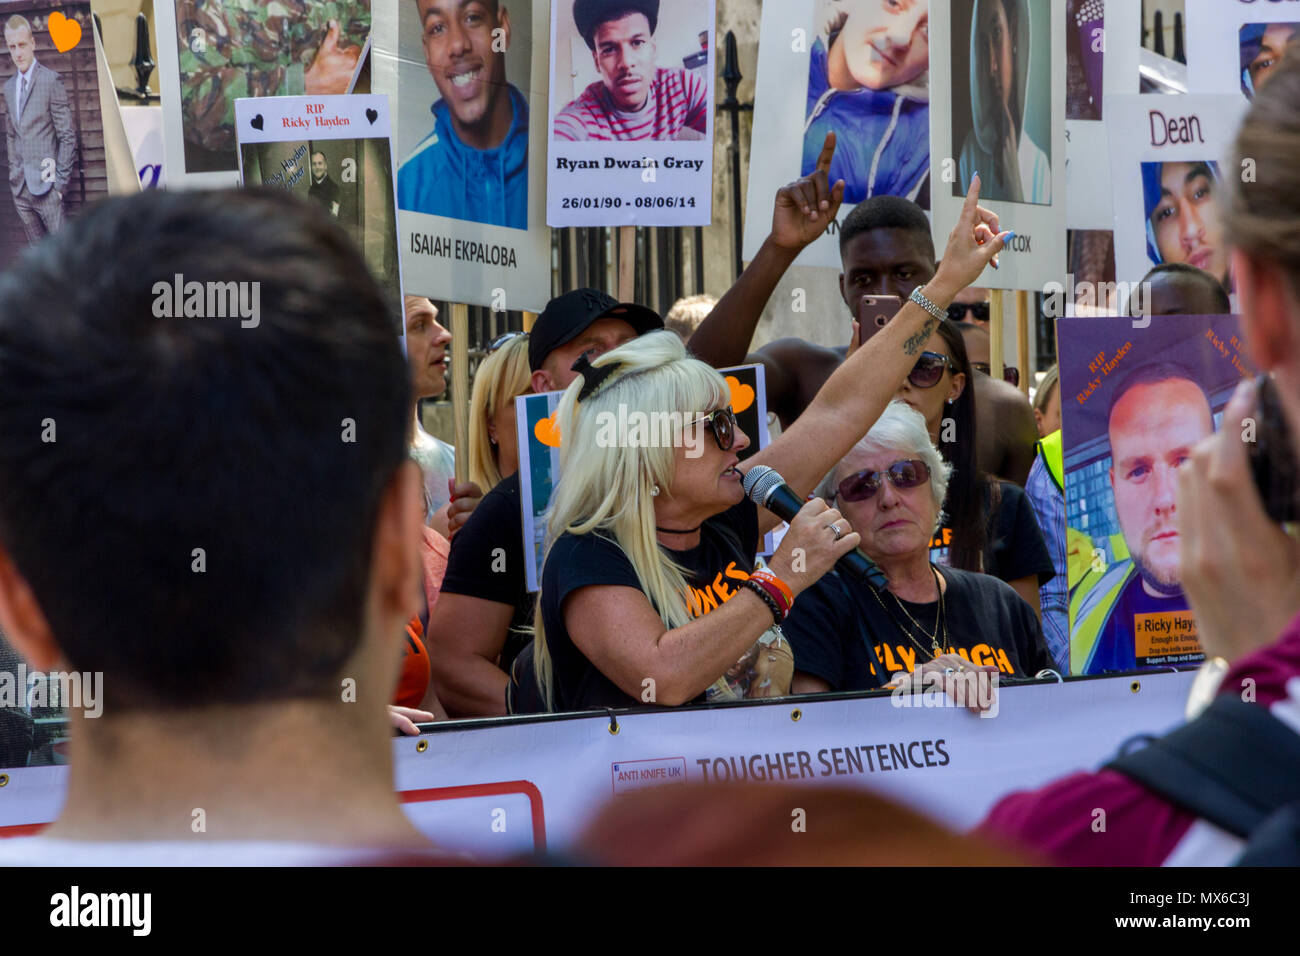 Downing Street, London, UK. 3rd June 2018. This morning, families of knife crime victims, their friends and supporters gather opposite 10 Downing street, prior to presenting The British Prime Minister Theresa May with a petition demanding action to curb the unacceptable levels of Knife Crime in London and across the United Kingdom. Credit: Alan Fraser/Alamy Live News - Stock Image